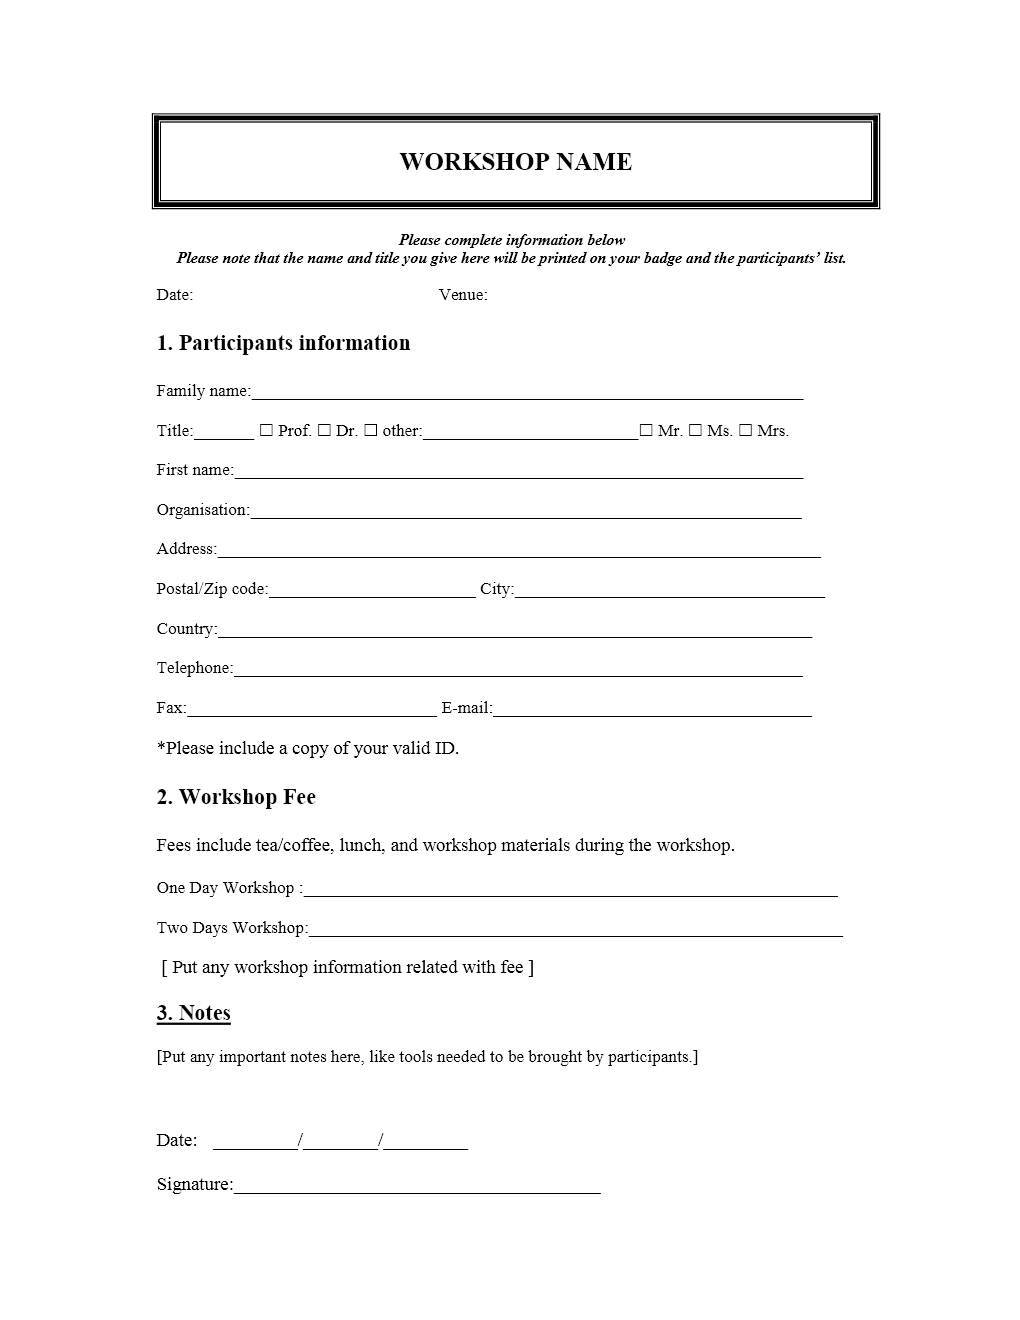 registration forms template free   April.onthemarch.co